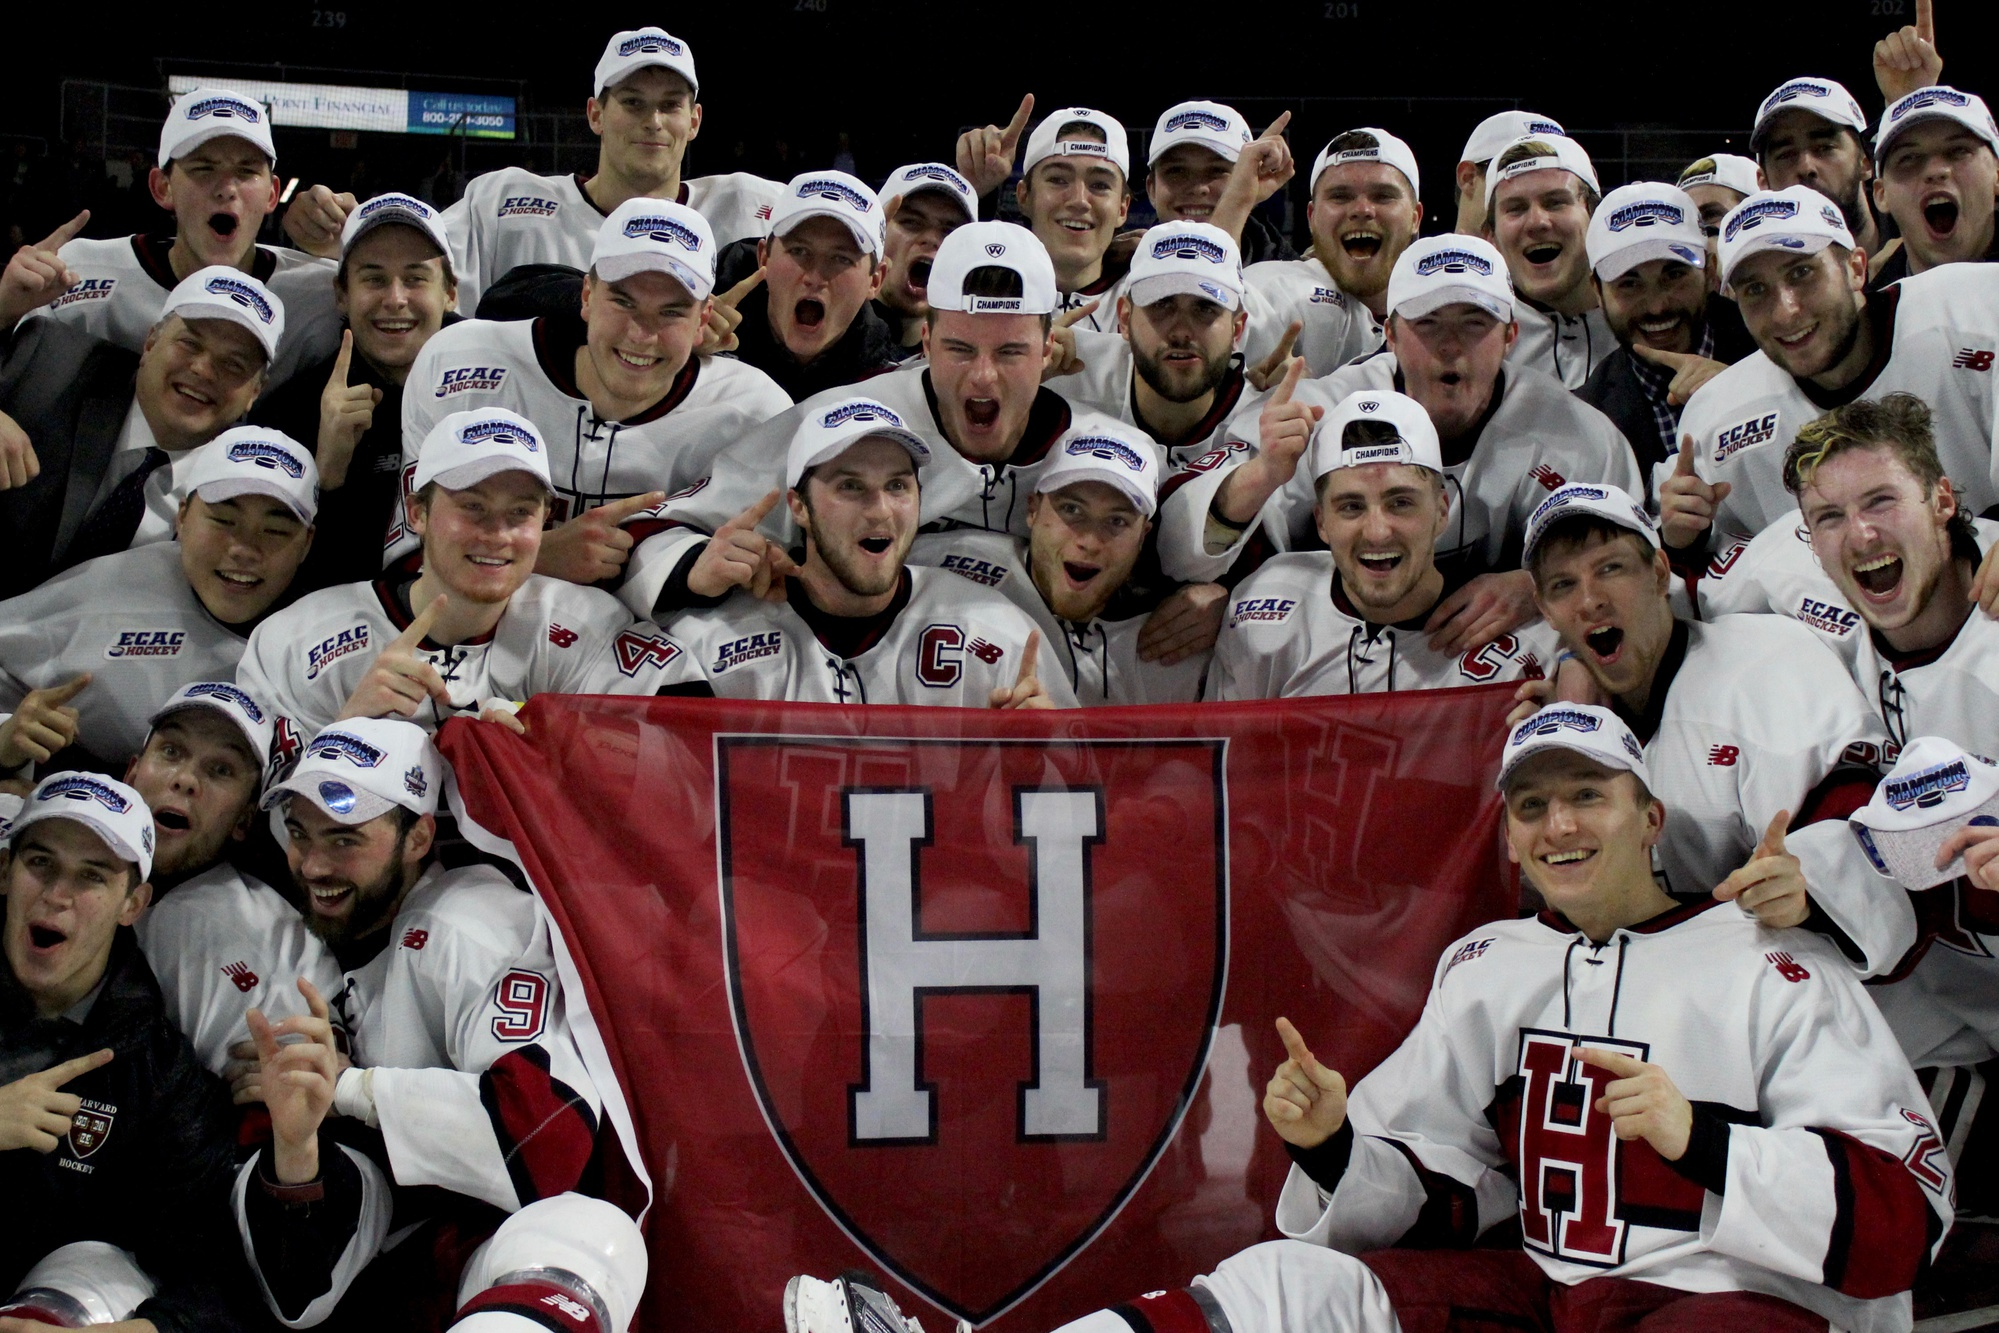 For the first time in 23 years, Harvard Men's Hockey has advanced to the Frozen Four, which this year will be held in Chicago. The Crimson bested the Air Force Falcons on Saturday, 3-2.